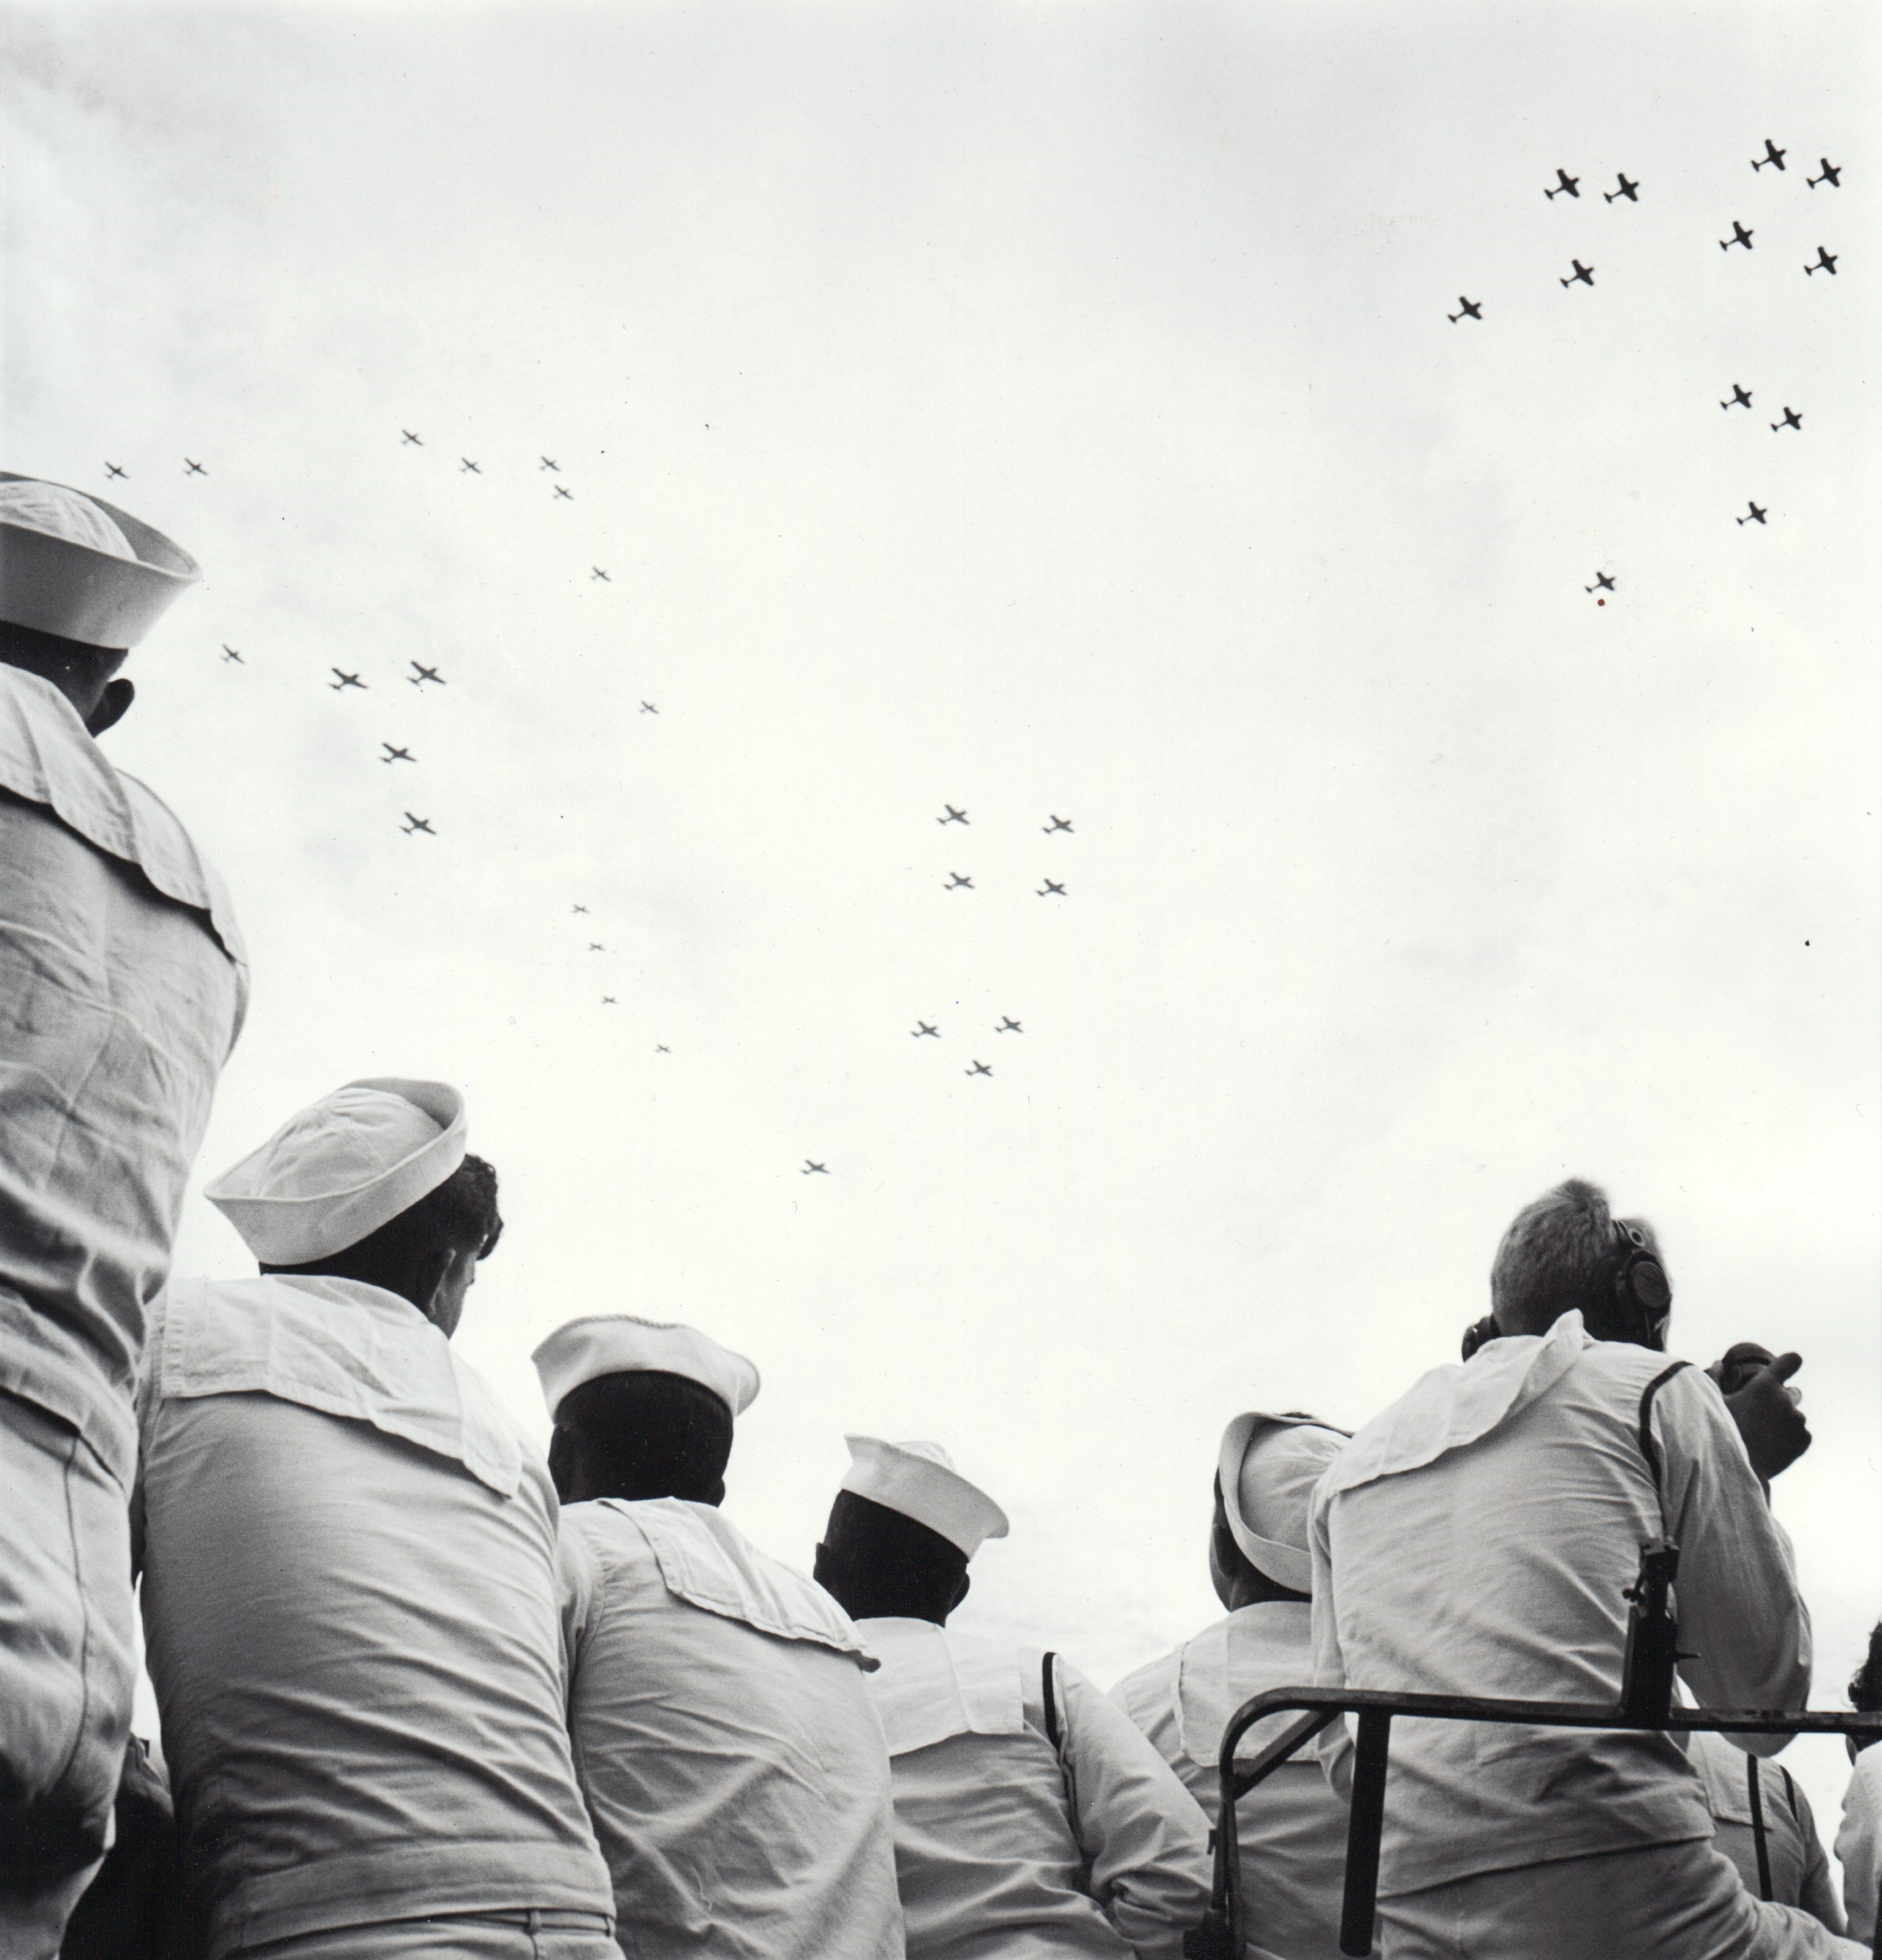 Sailors Watching Planes in Formation